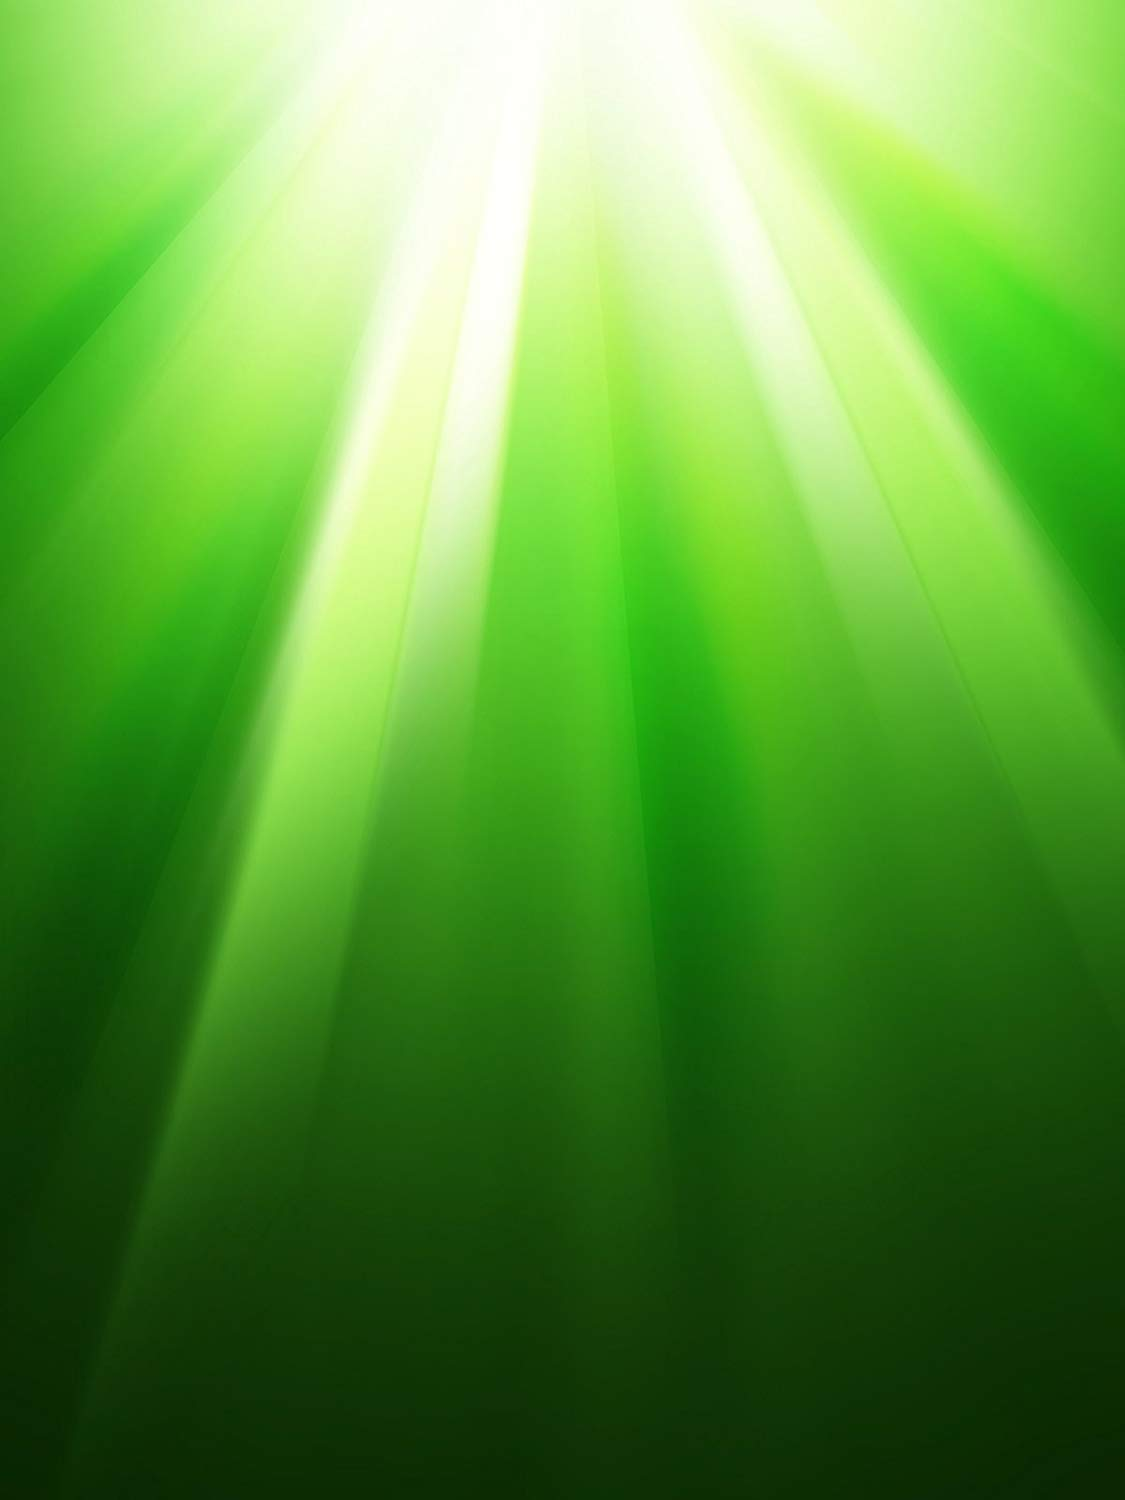 Image 4 - Green Spring Photography Backdrops Sunlight Photo Studio Backgound Wall Photography Background 5x7ft-in Photo Studio Accessories from Consumer Electronics